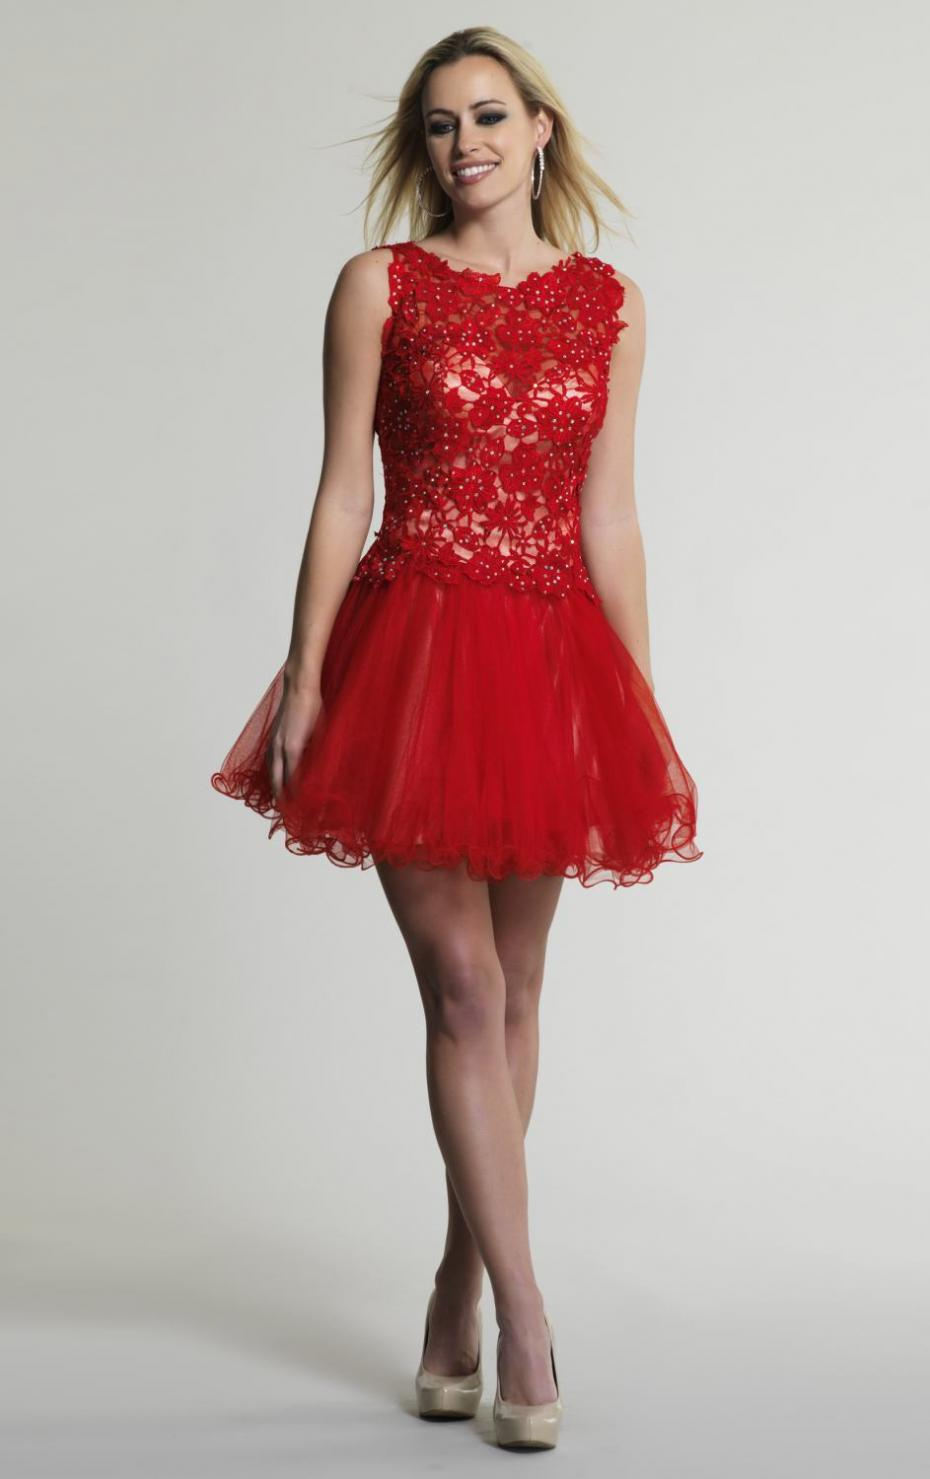 Puffy Red Knee Length Dresses - Dress images